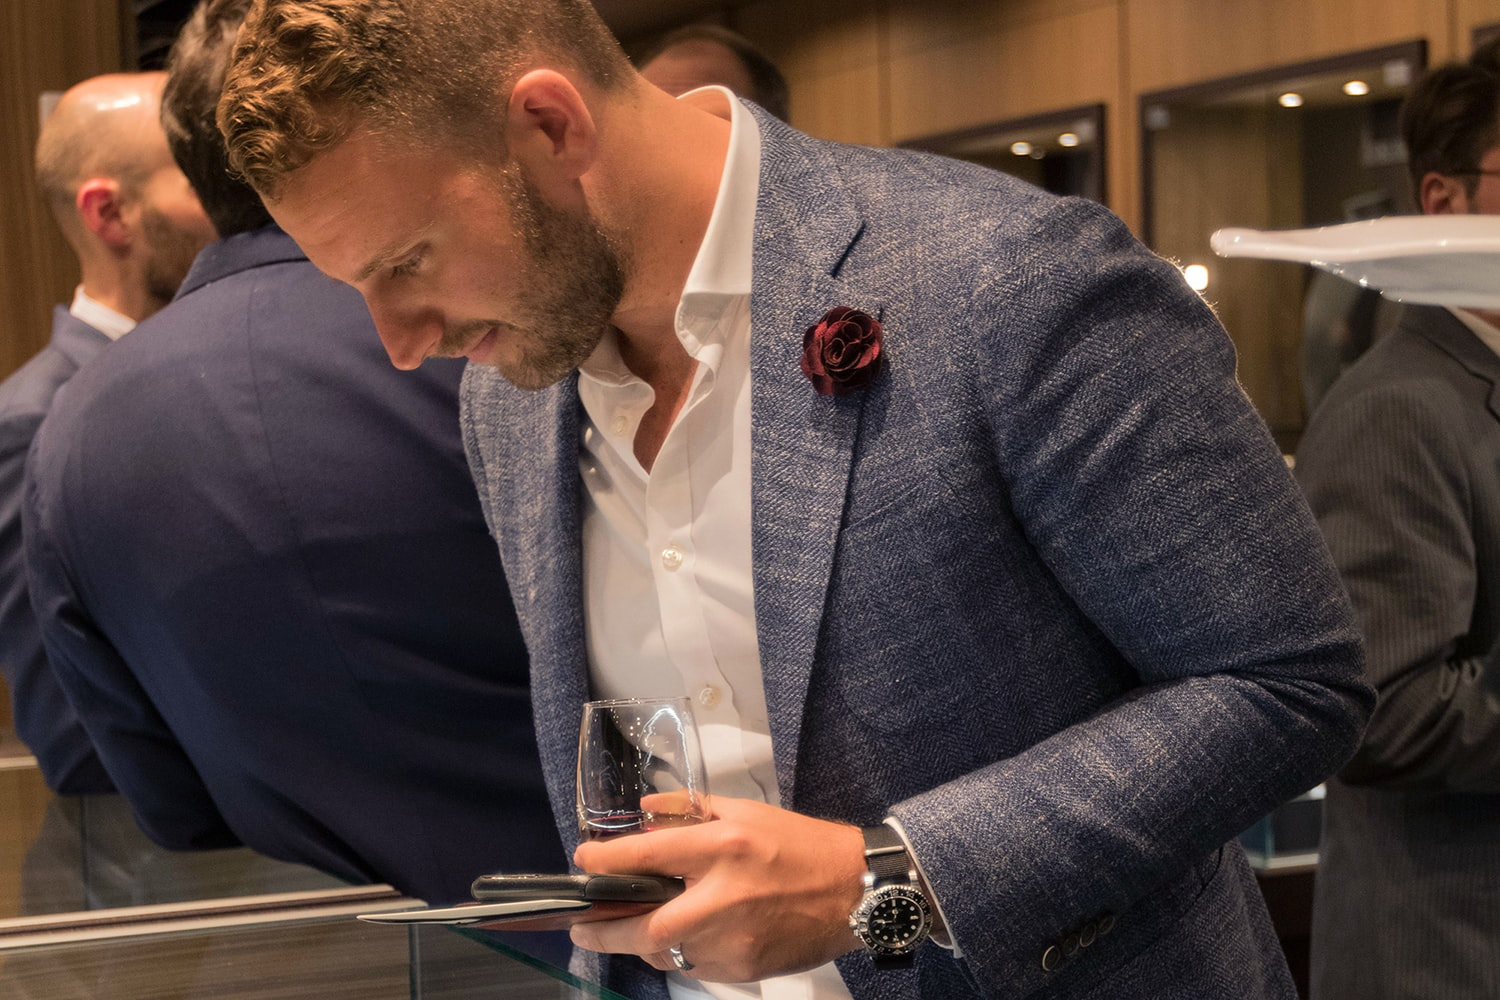 Photo Report: The Tudor Baselworld Novelties At Swiss Fine Timing In Chicago Photo Report: The Tudor Baselworld Novelties At Swiss Fine Timing In Chicago  Just People Observing only